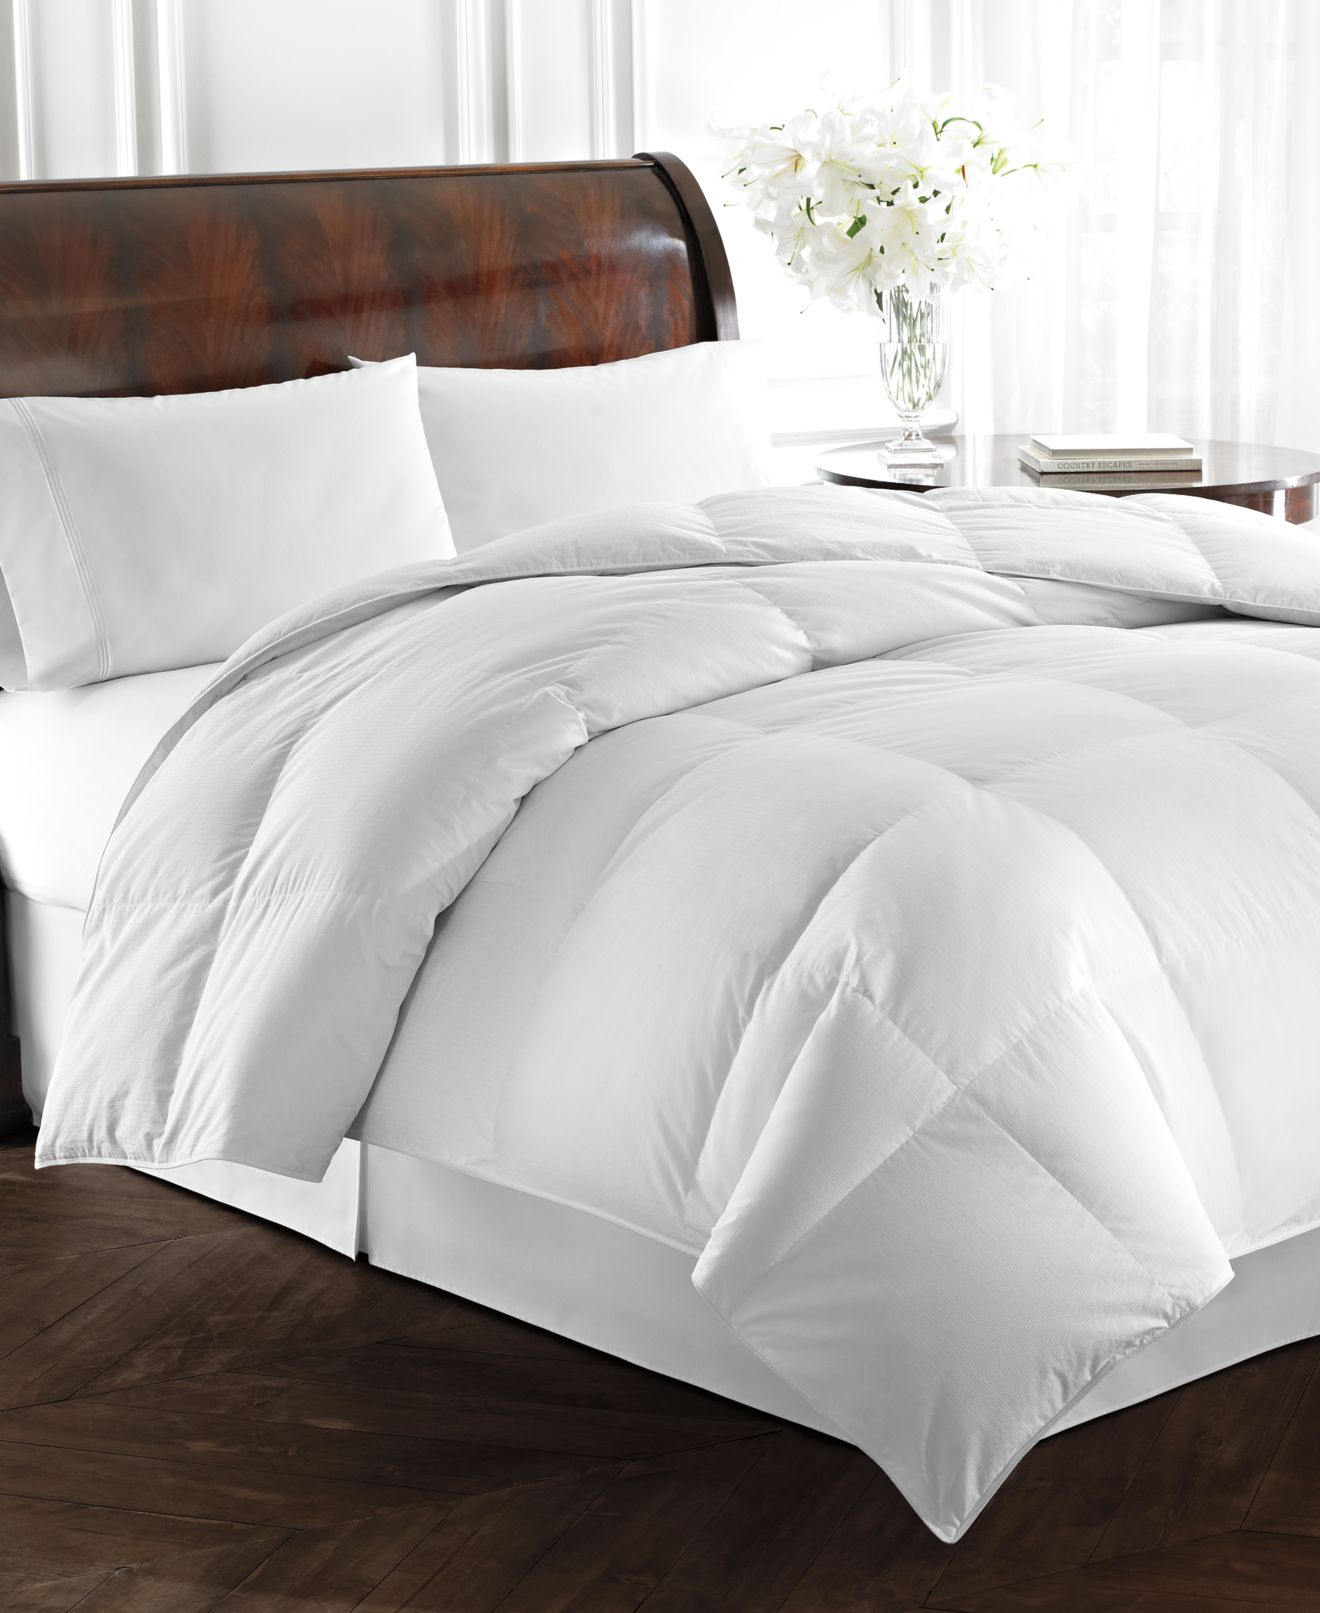 Best Comforter Material down comforters and down alternative - macy's